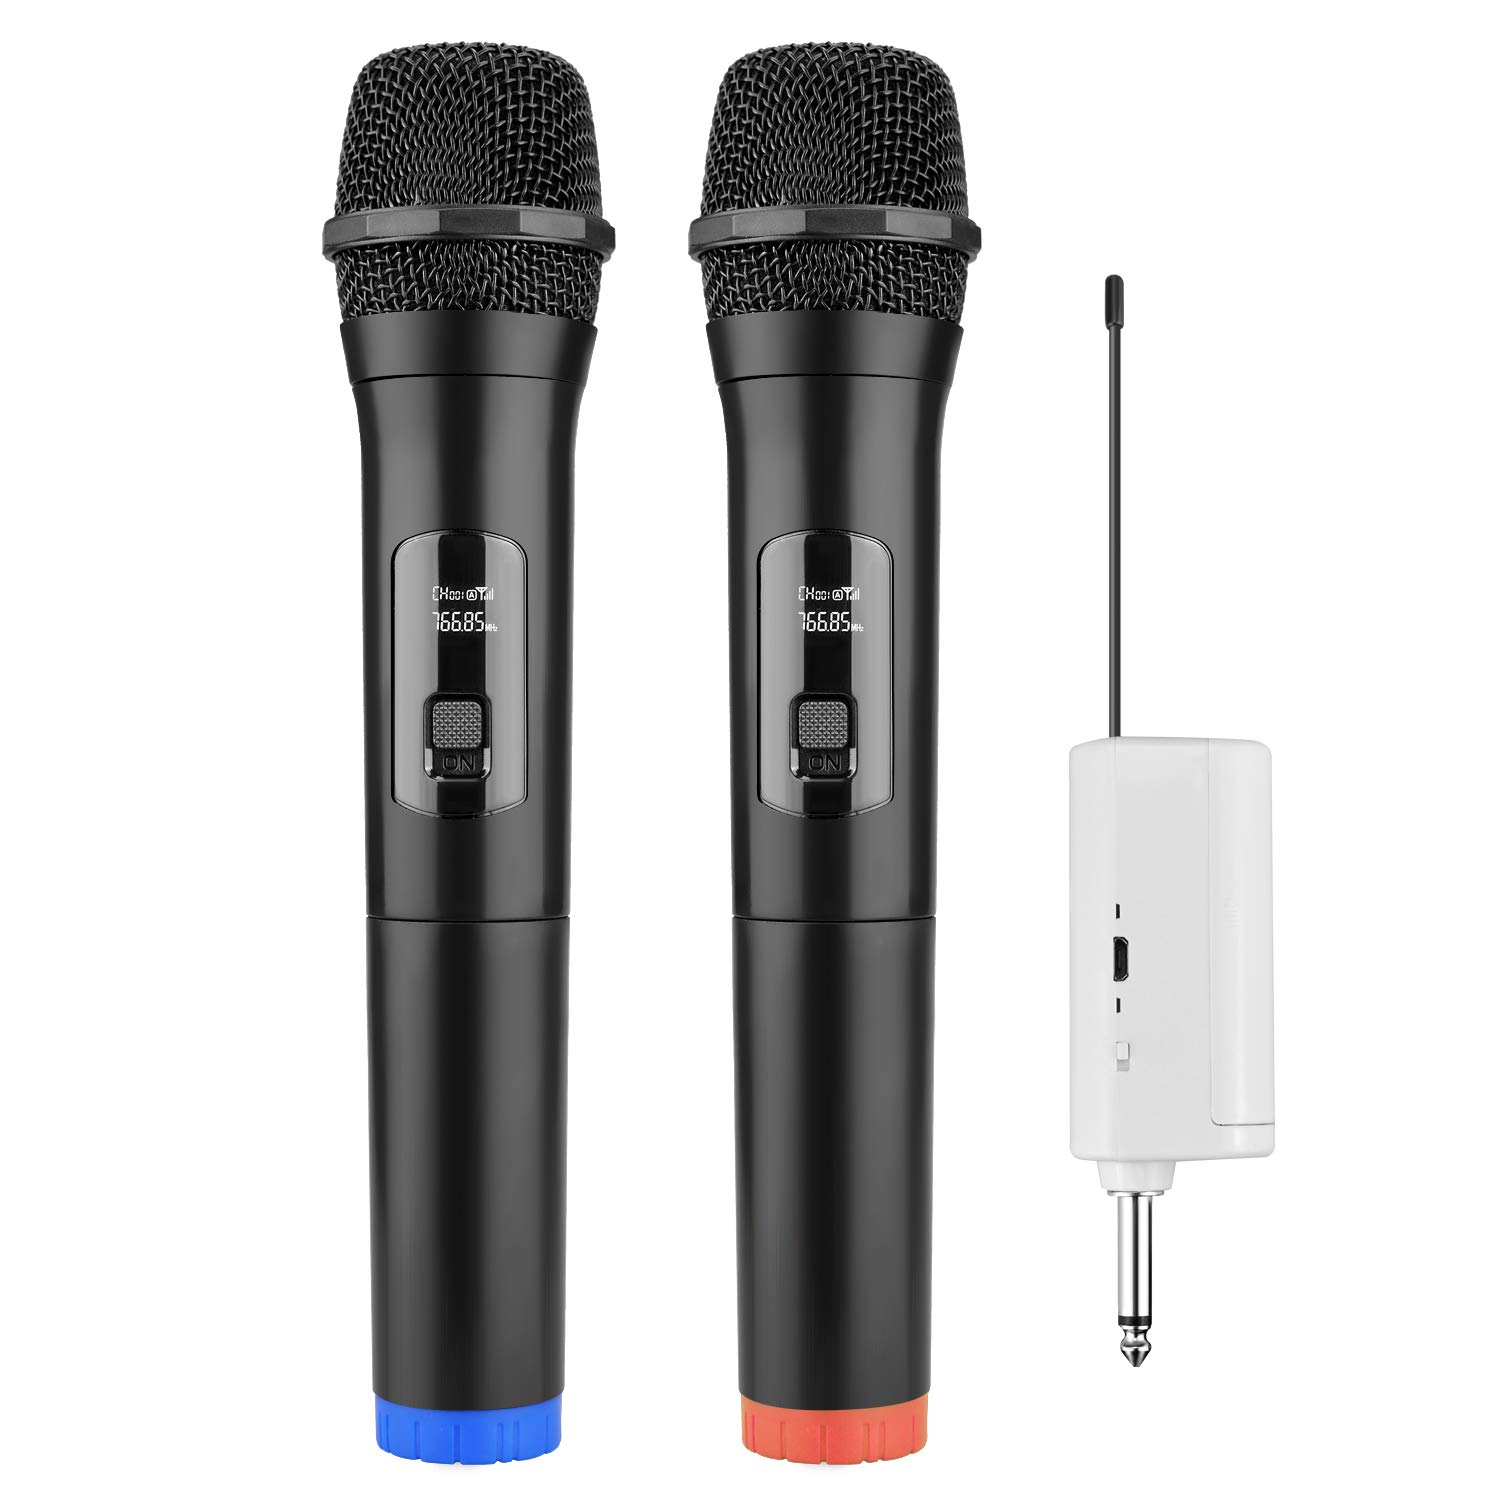 Wireless Microphone FerBuee Handheld Dynamic Microphone Professional Conference Mic Karaoke, Home Entertainment, Speech, Stage Shows